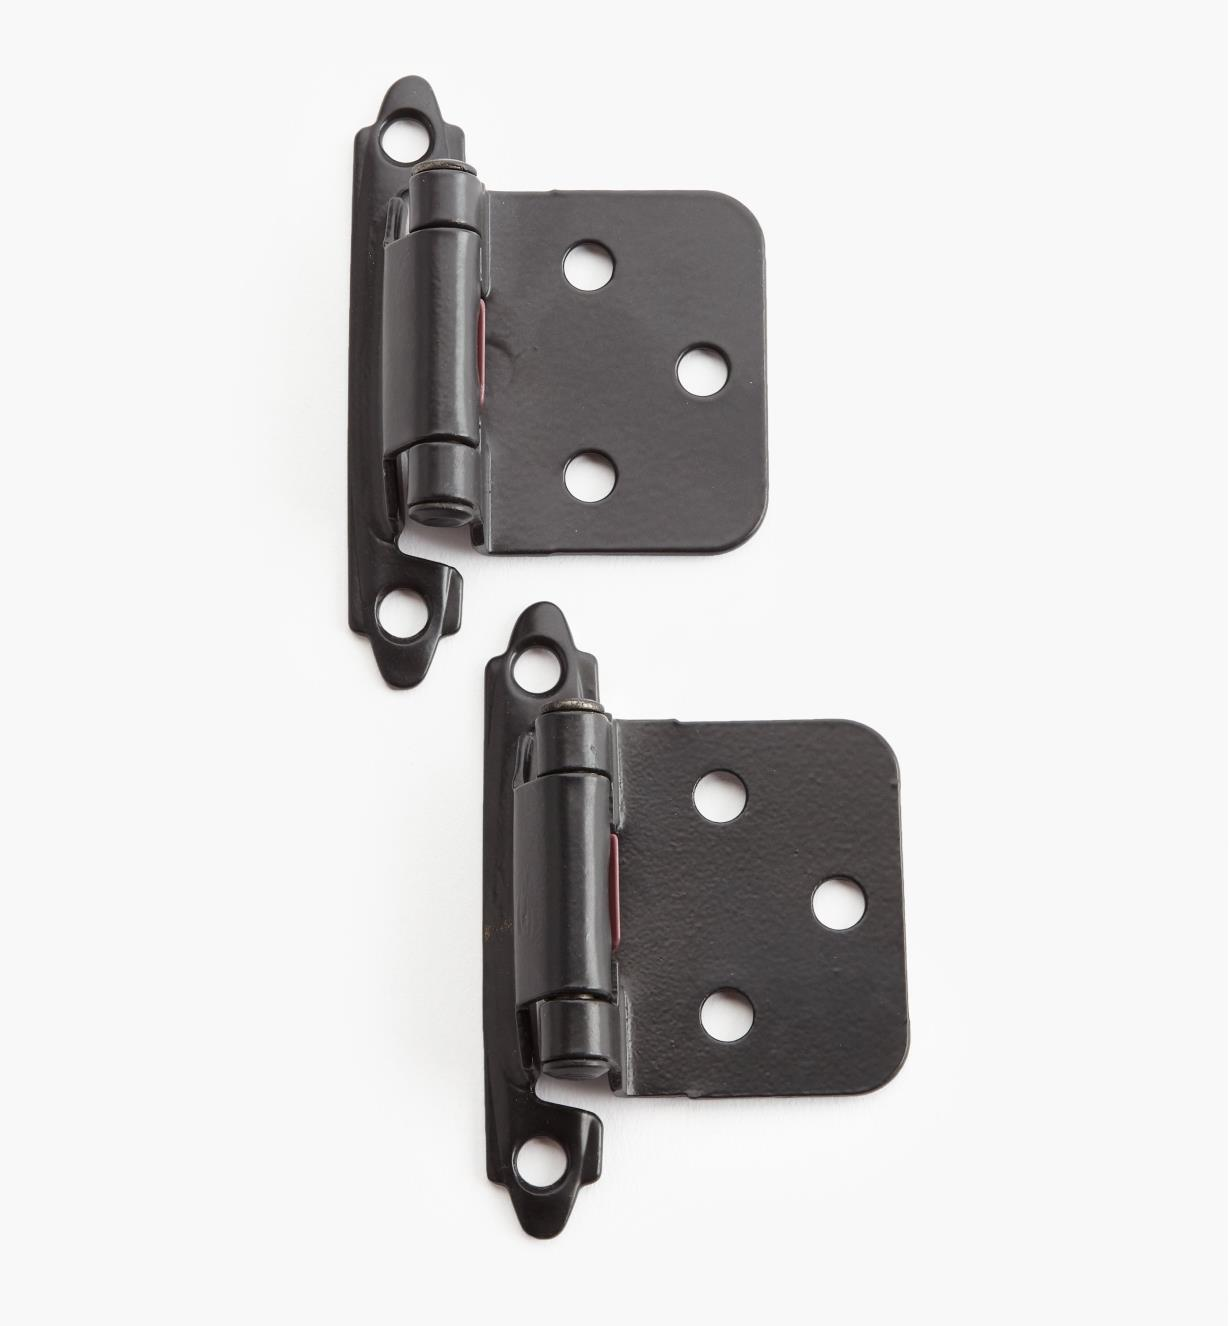 02H1343 - Black Flush-Mount Self-Closing Hinges, pair